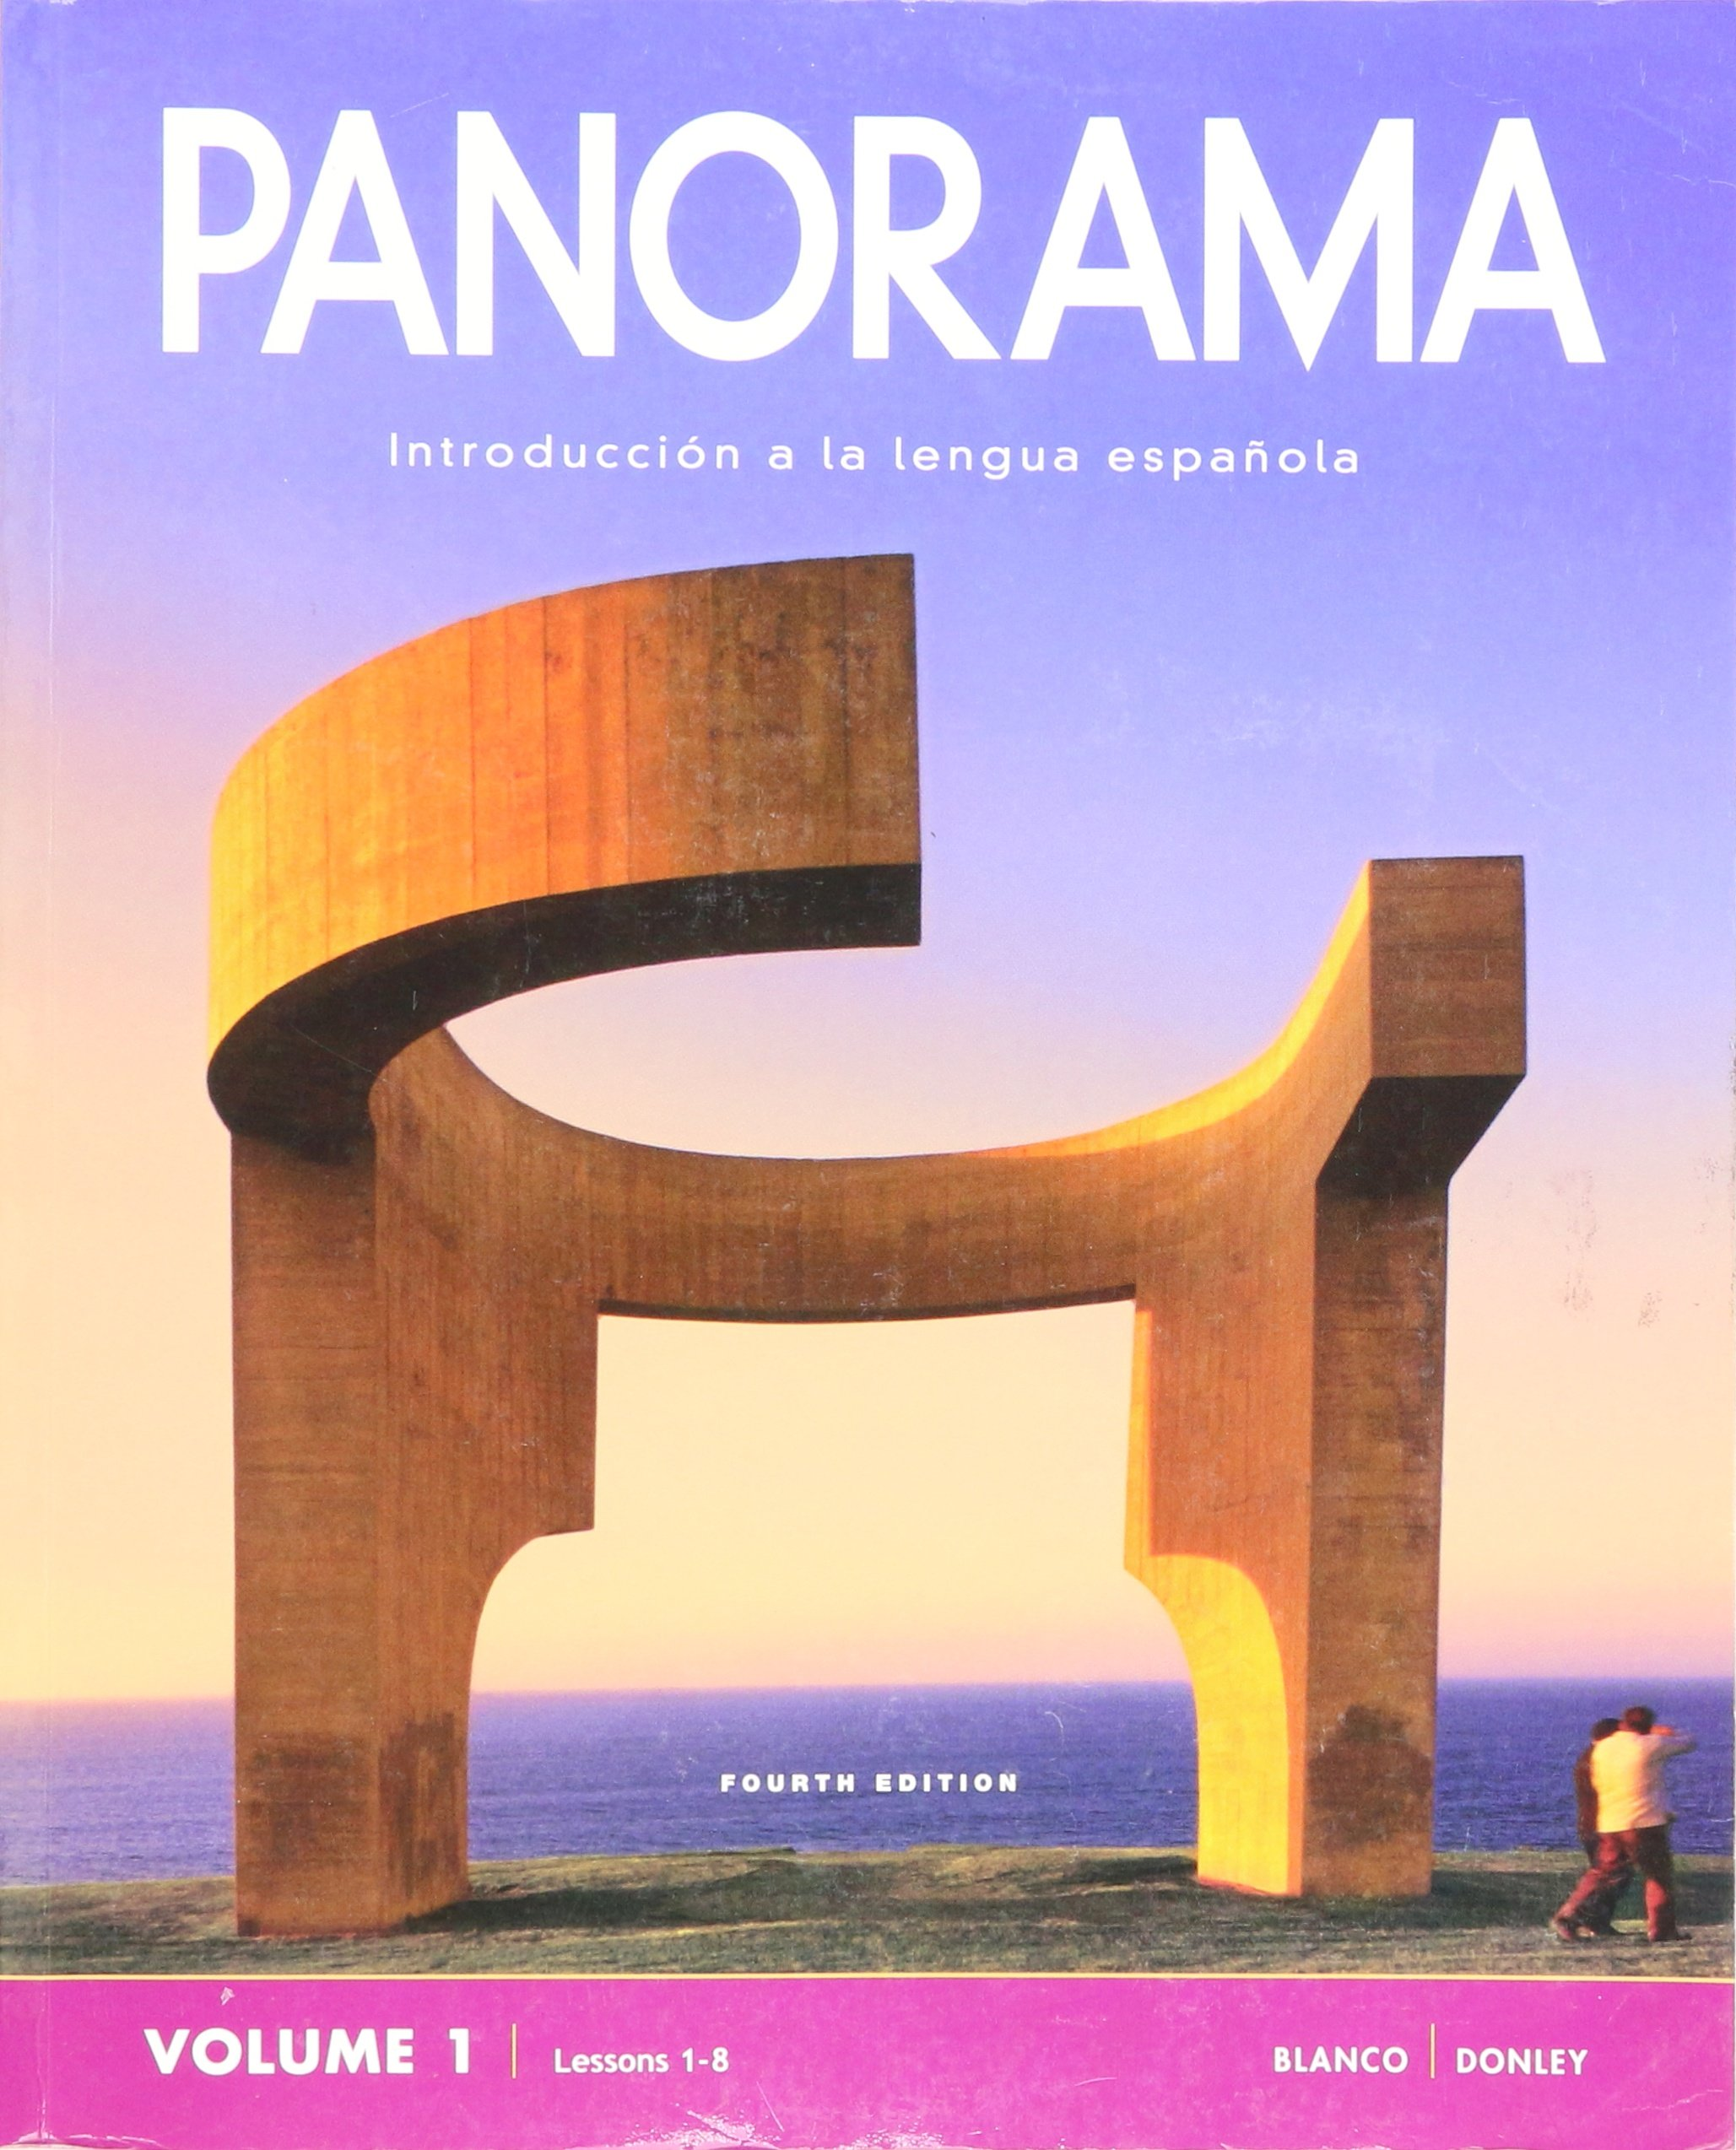 Download Panorama, 4th Ed, Student Edition Vol 1. (Lessons 1-8) and Supersite Plus Code ebook